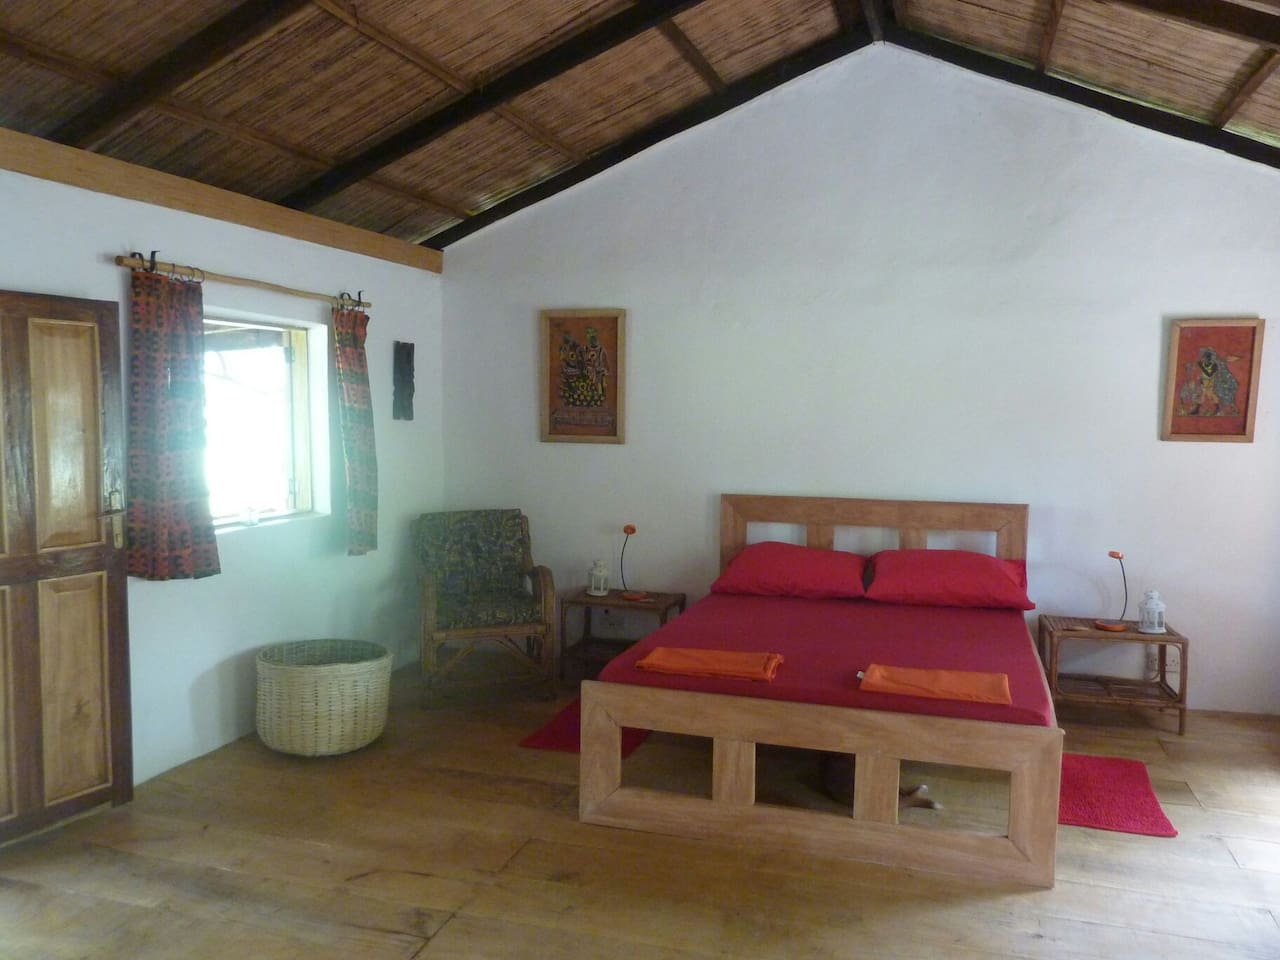 All our cabins have beautiful, hardwood floors. All beds have mosquito nets and all rooms have fans. This cabin also has a single bed.